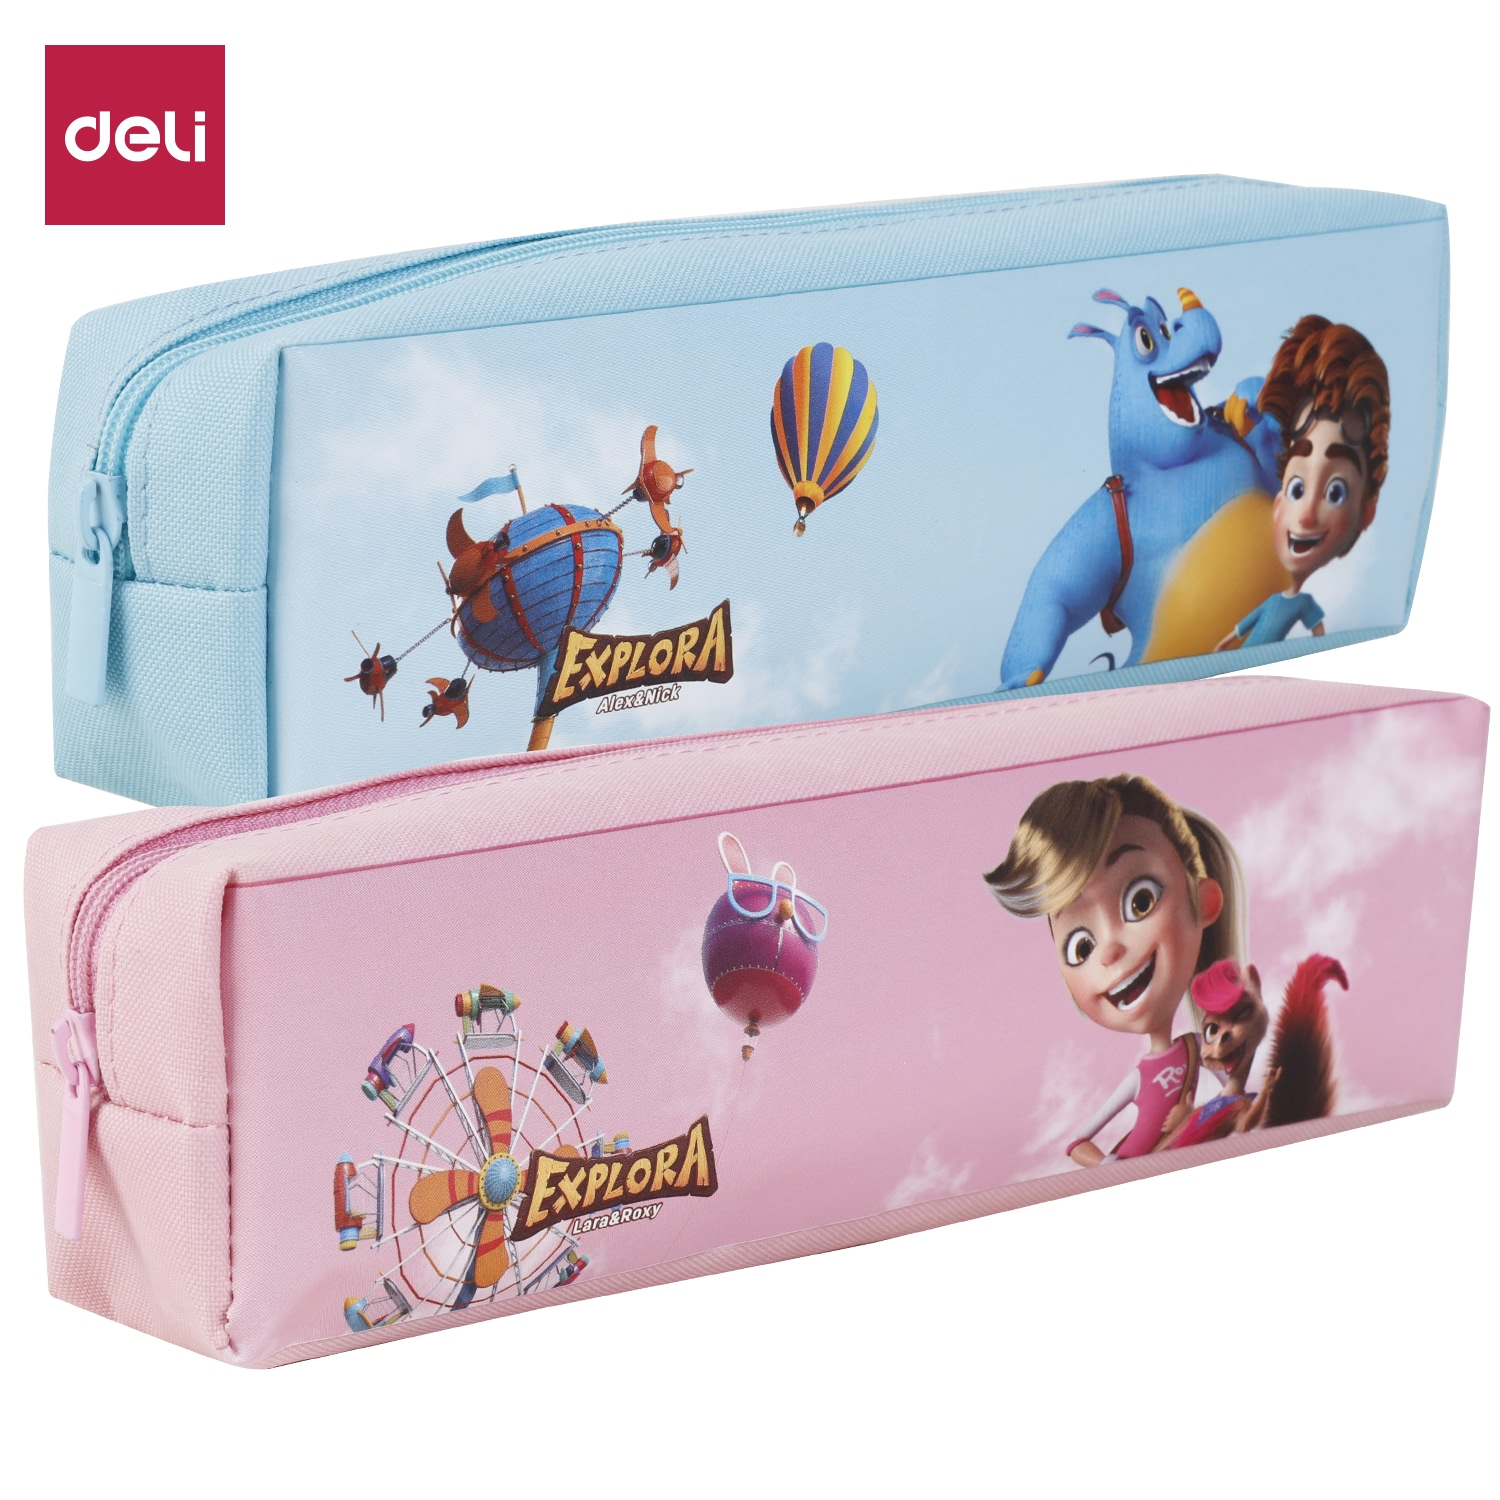 DELI Pencil Bags Cases Colorful Cartoon Large Capacity Creative Fabric Pen Box Pouch Case School Stationary Supplies EZ86002